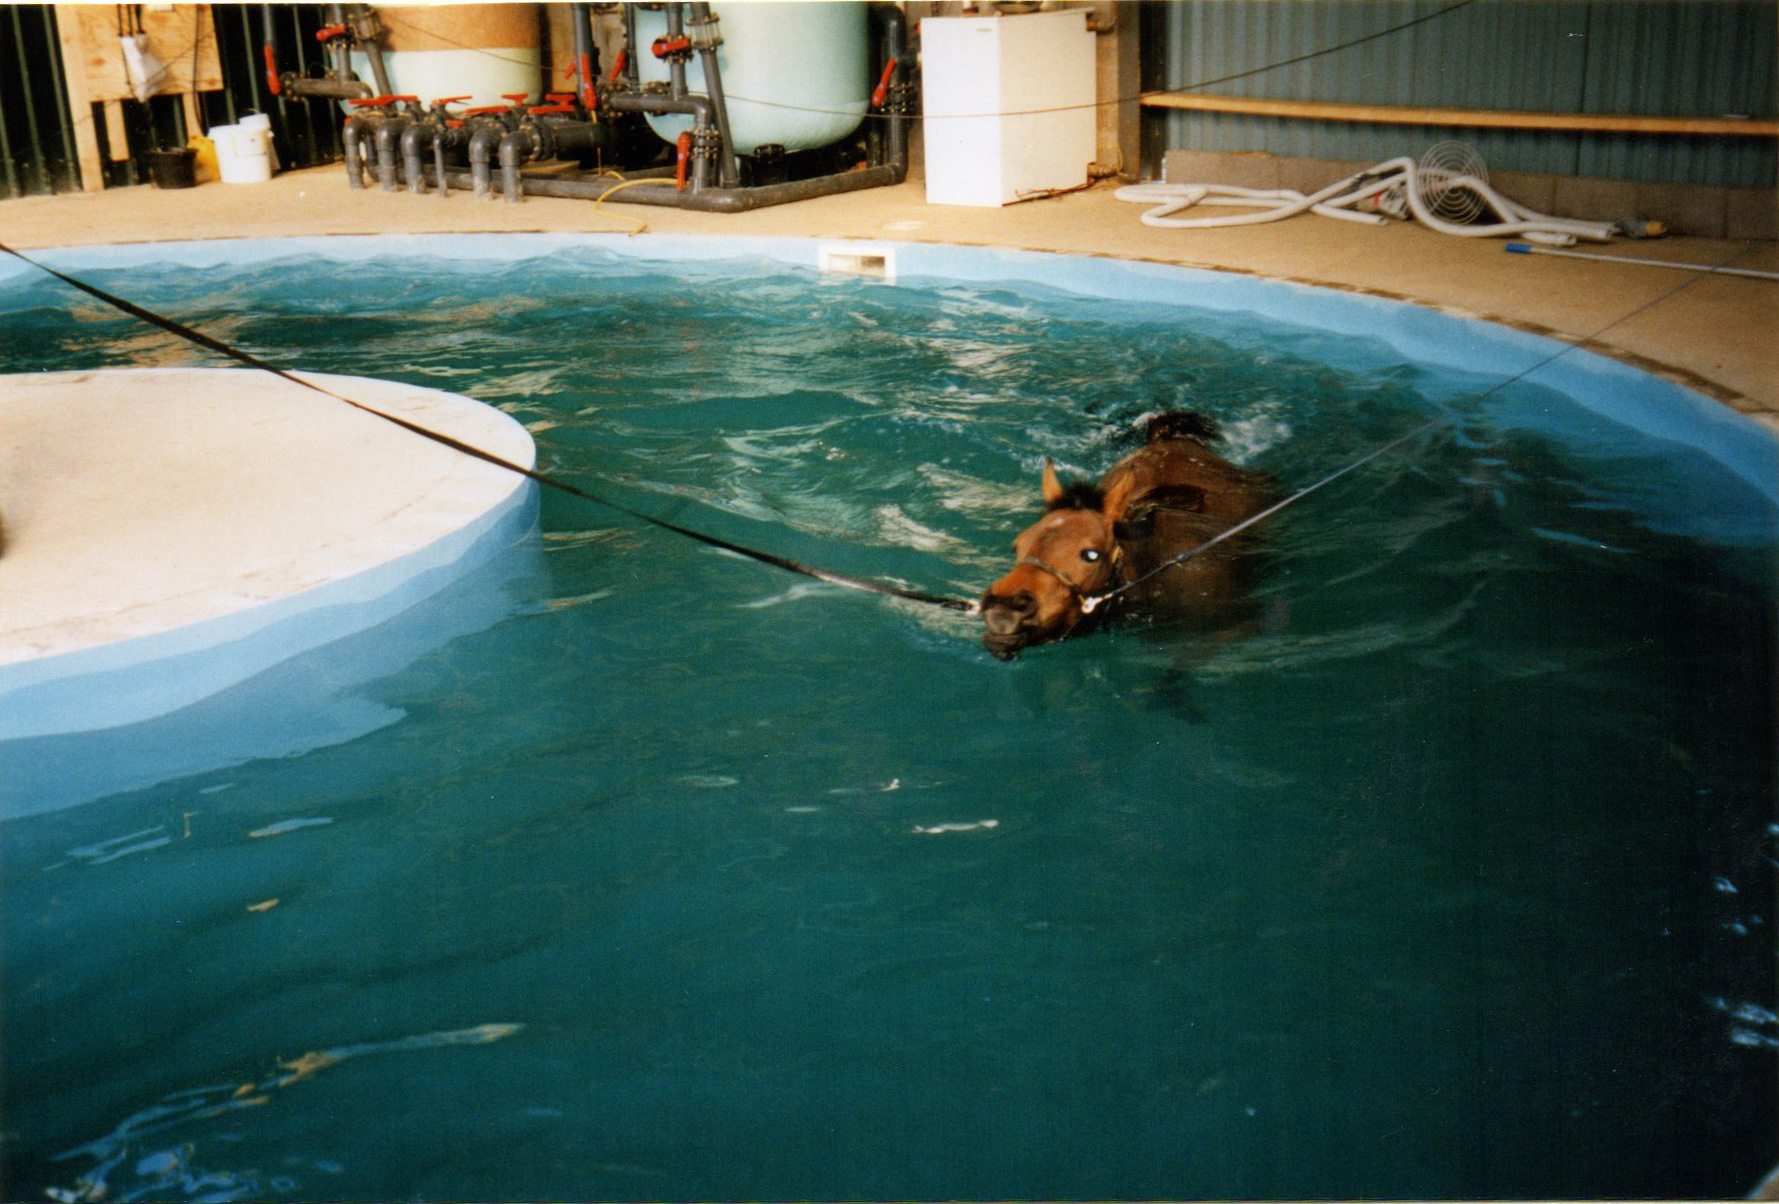 Horse swimming pool equine hydrotherapy asher swimpool for Show pool horse racing